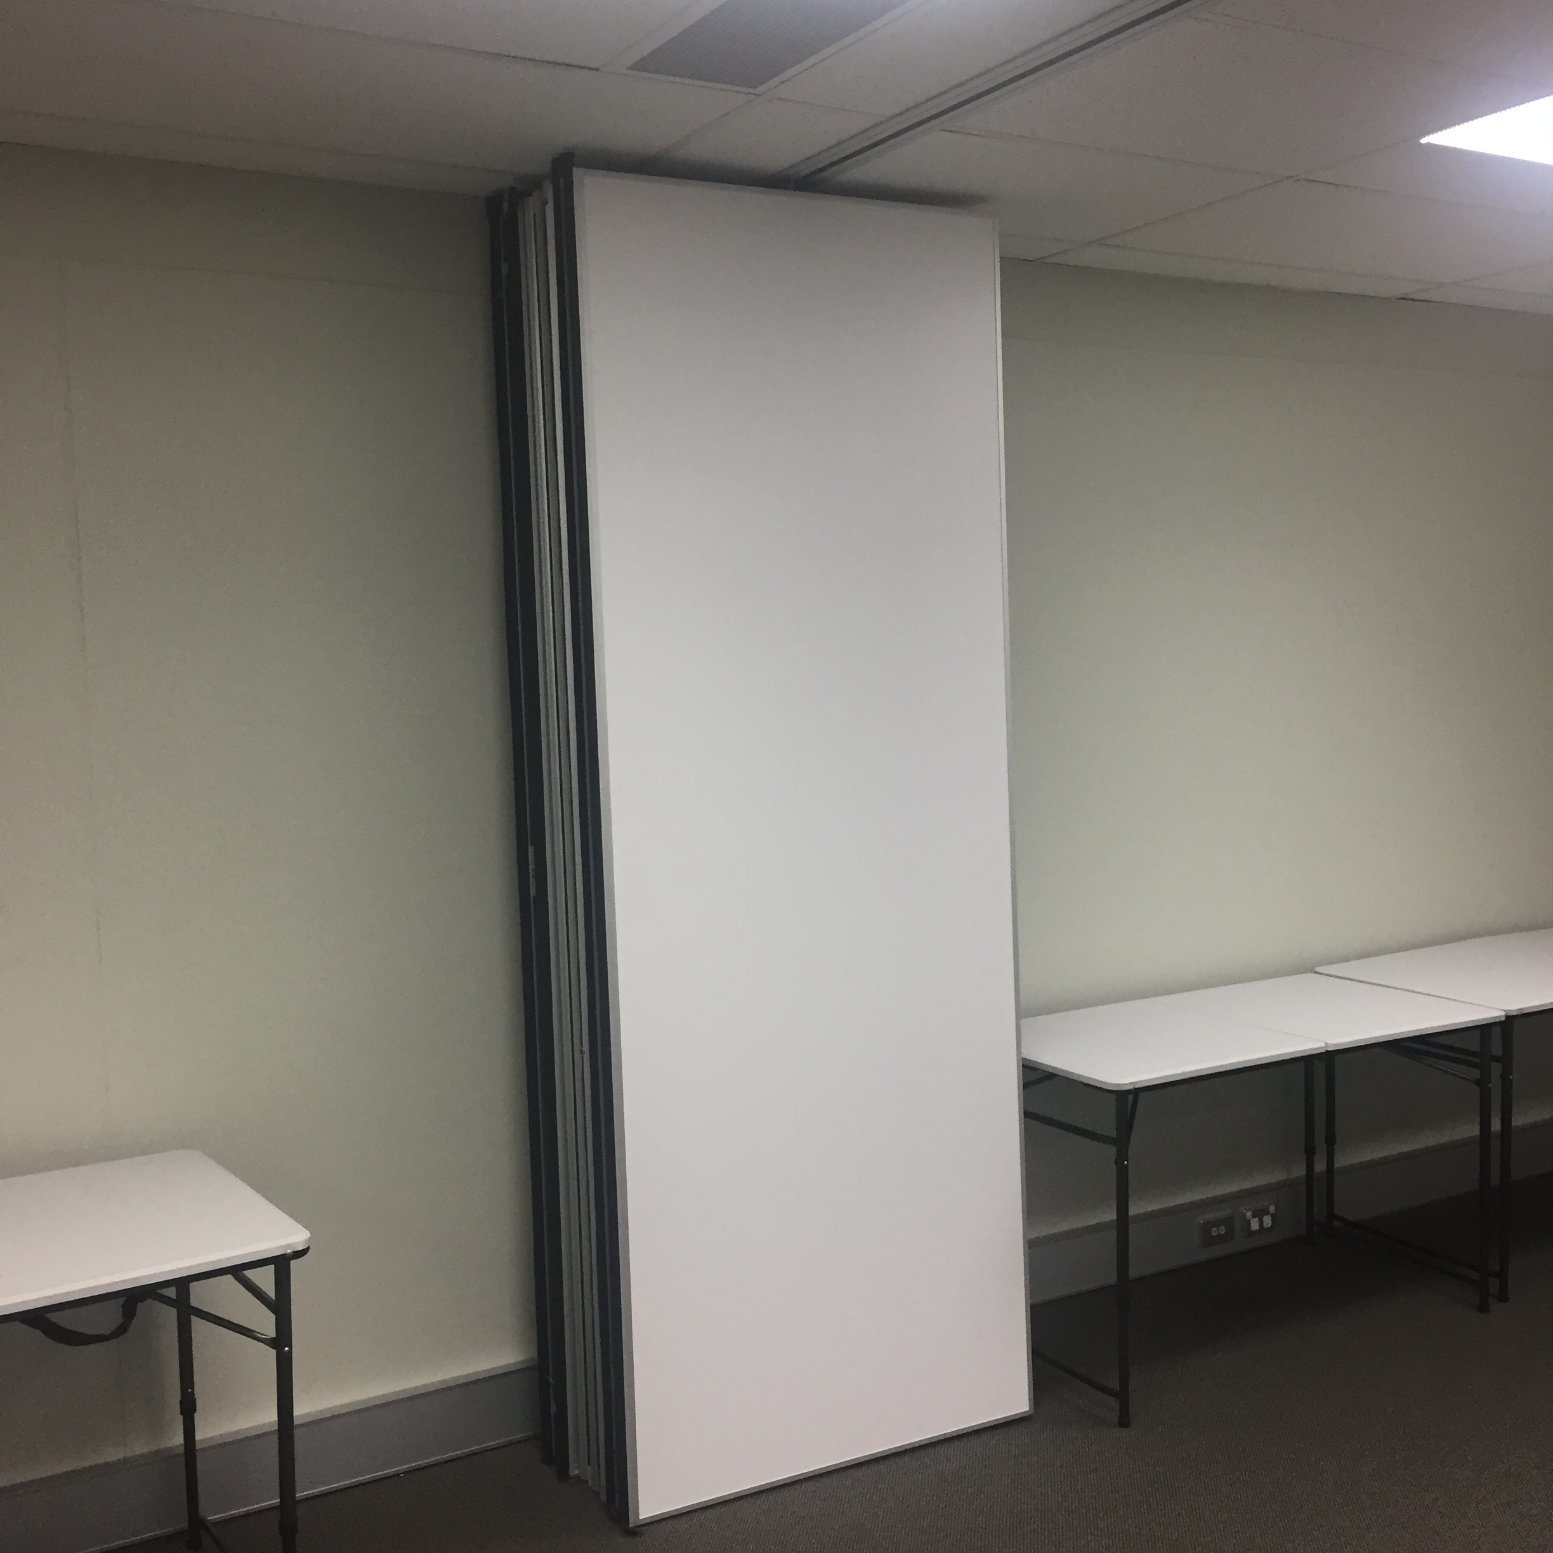 School Operable Partition Walls for Classroom Division